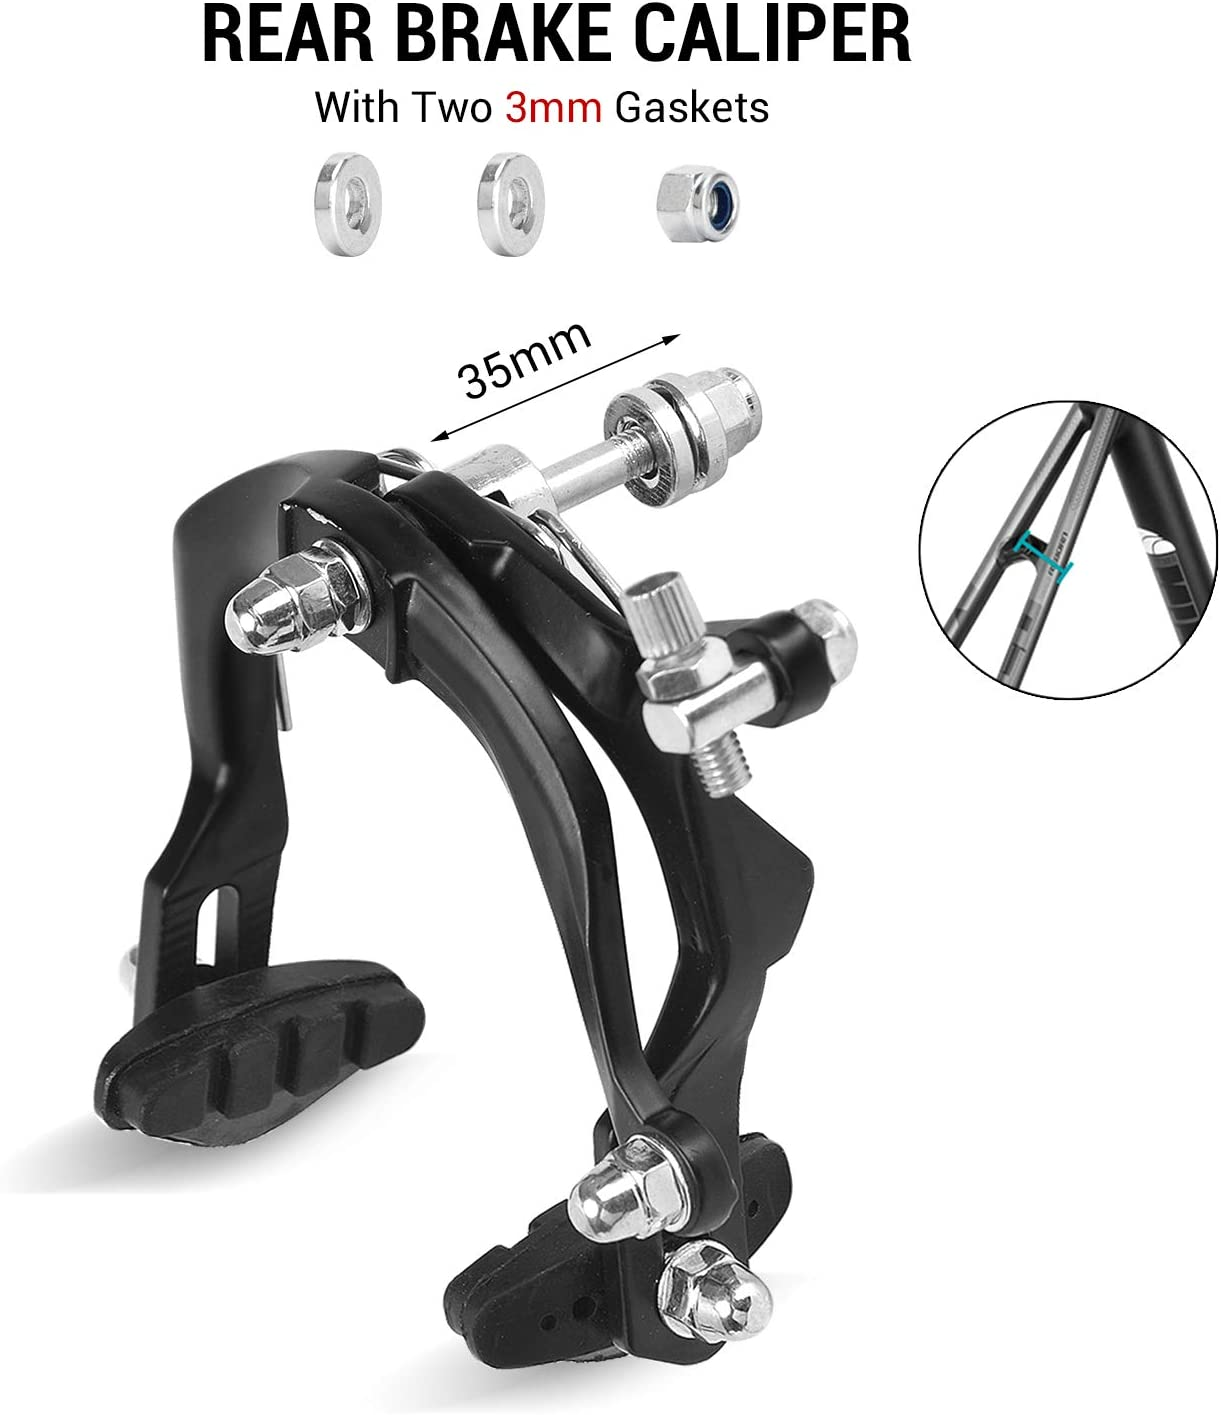 Lightweight Alloy Bike Bicycle Long Reach Road Calipers Front Rear C-Brakes Part